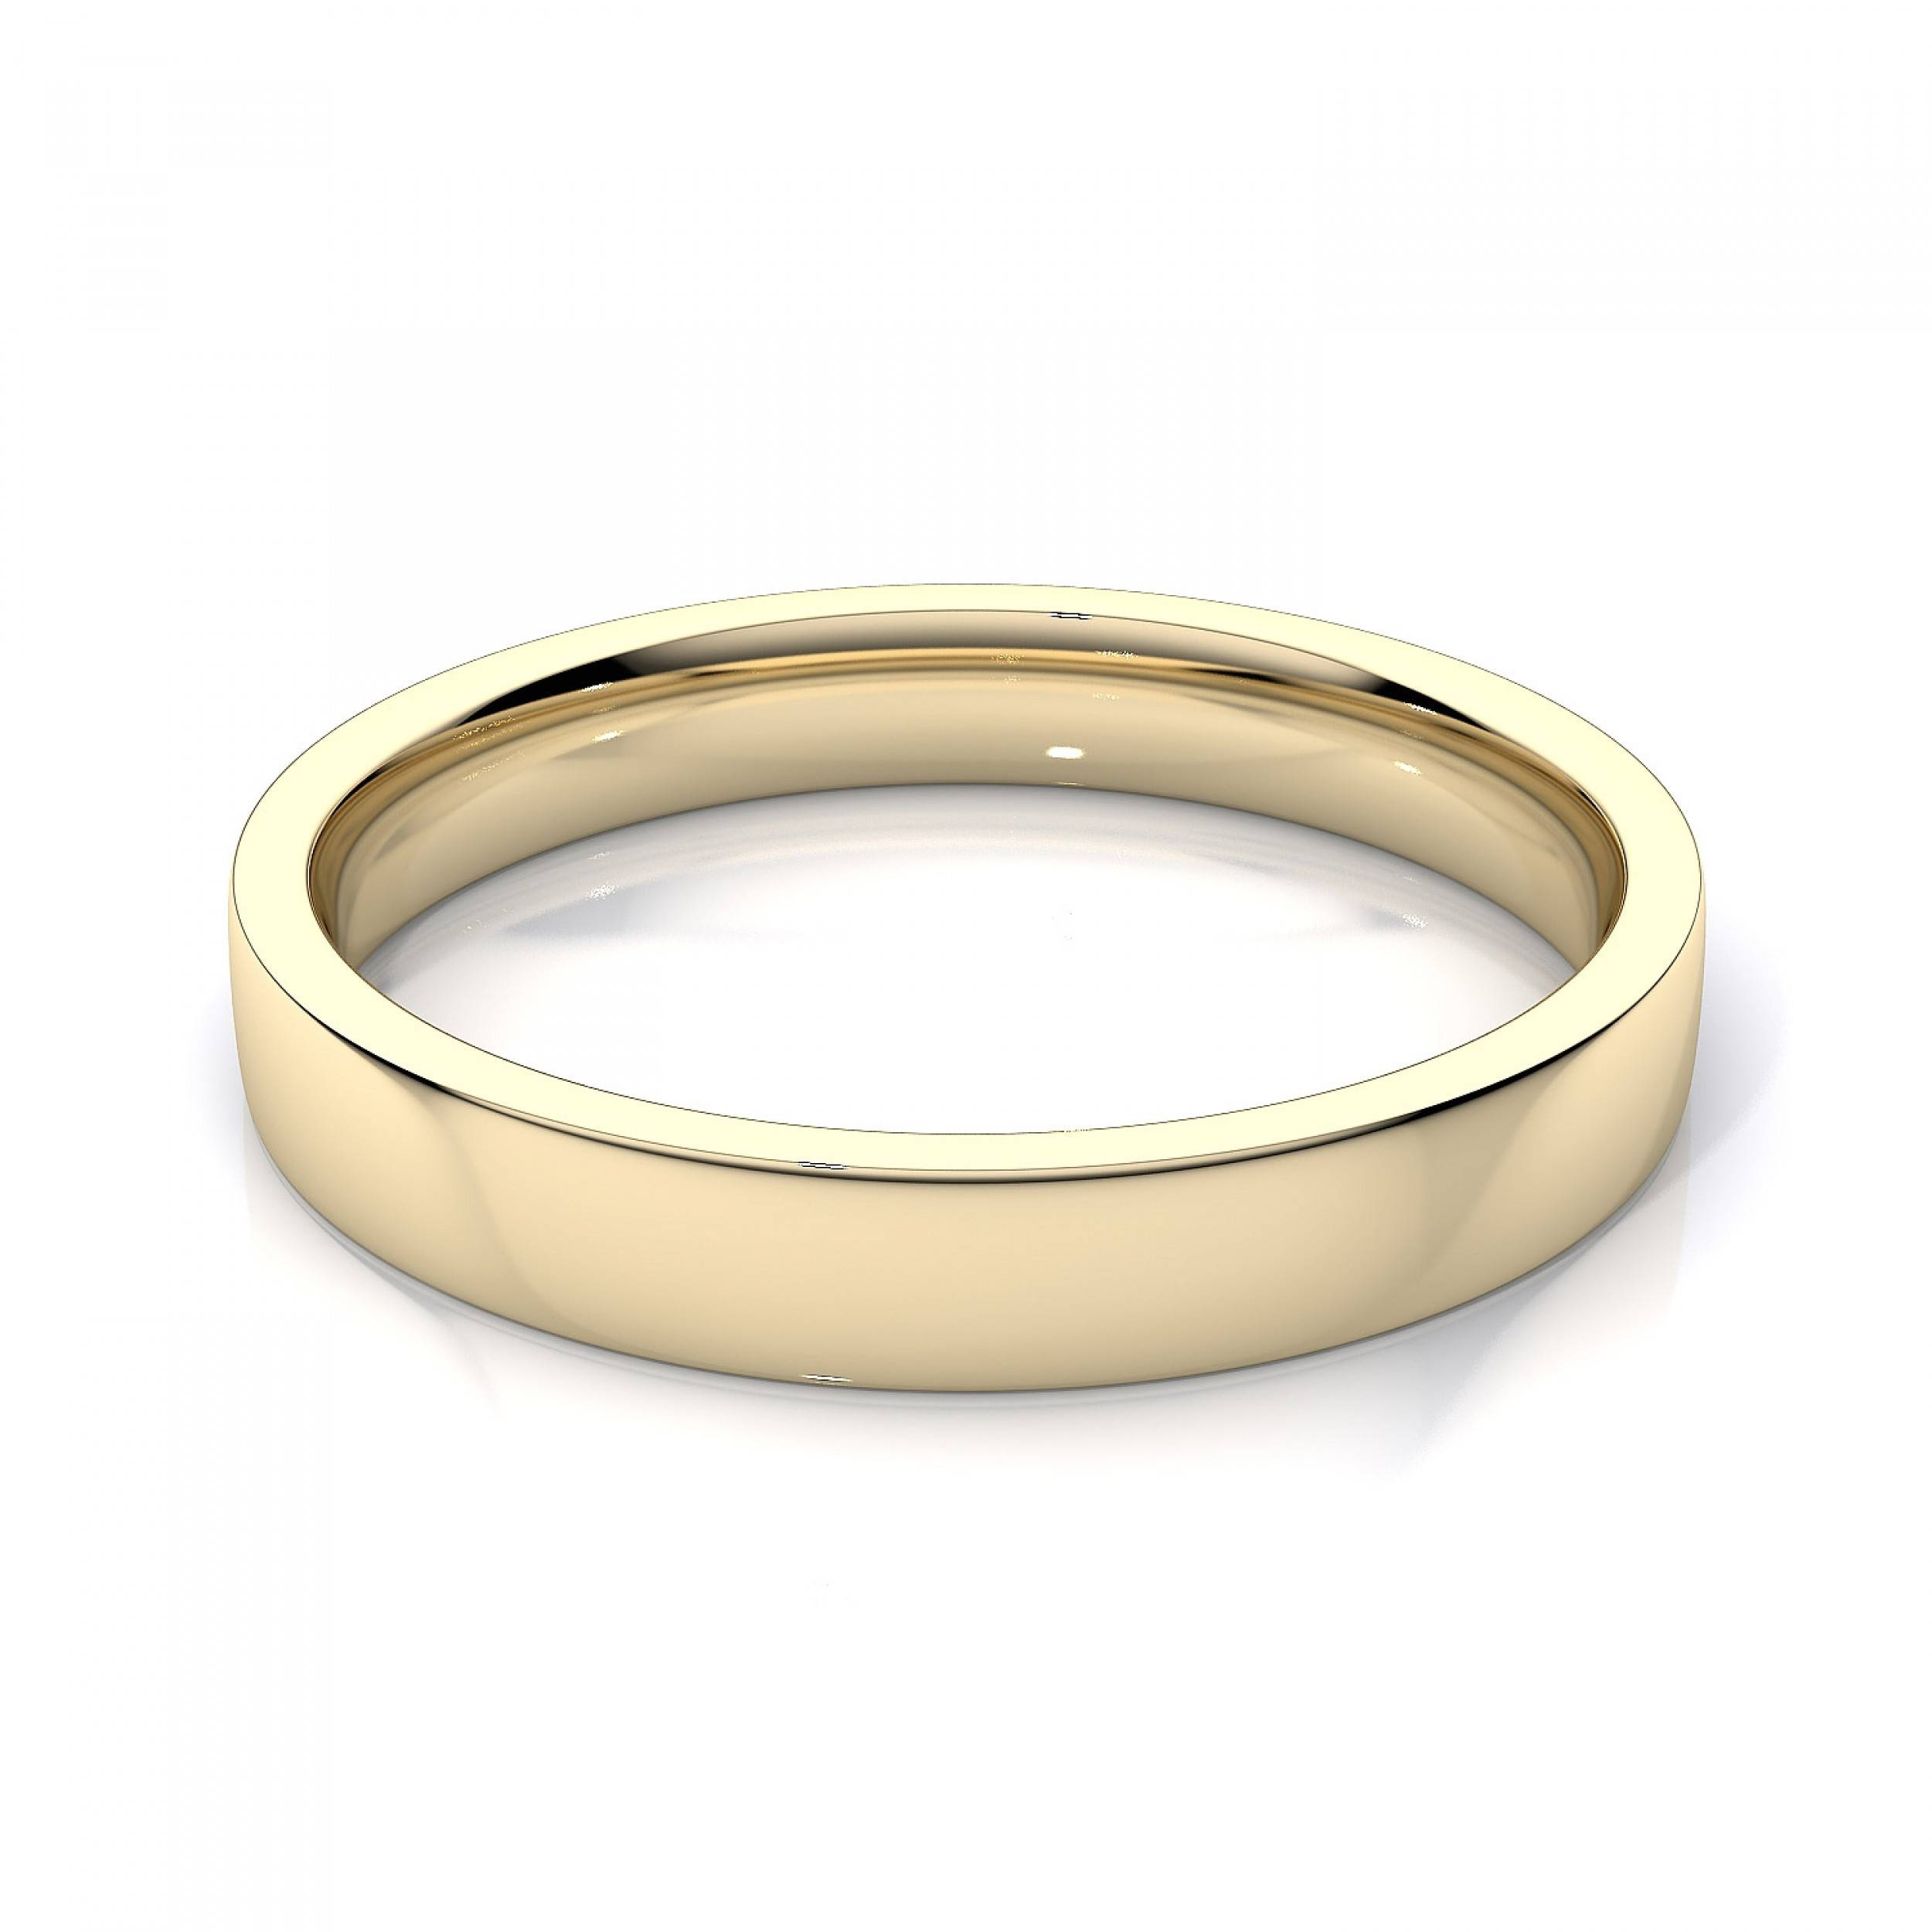 gold heavy for her of wedding dome best solid yellow plain bands mens band ring rings